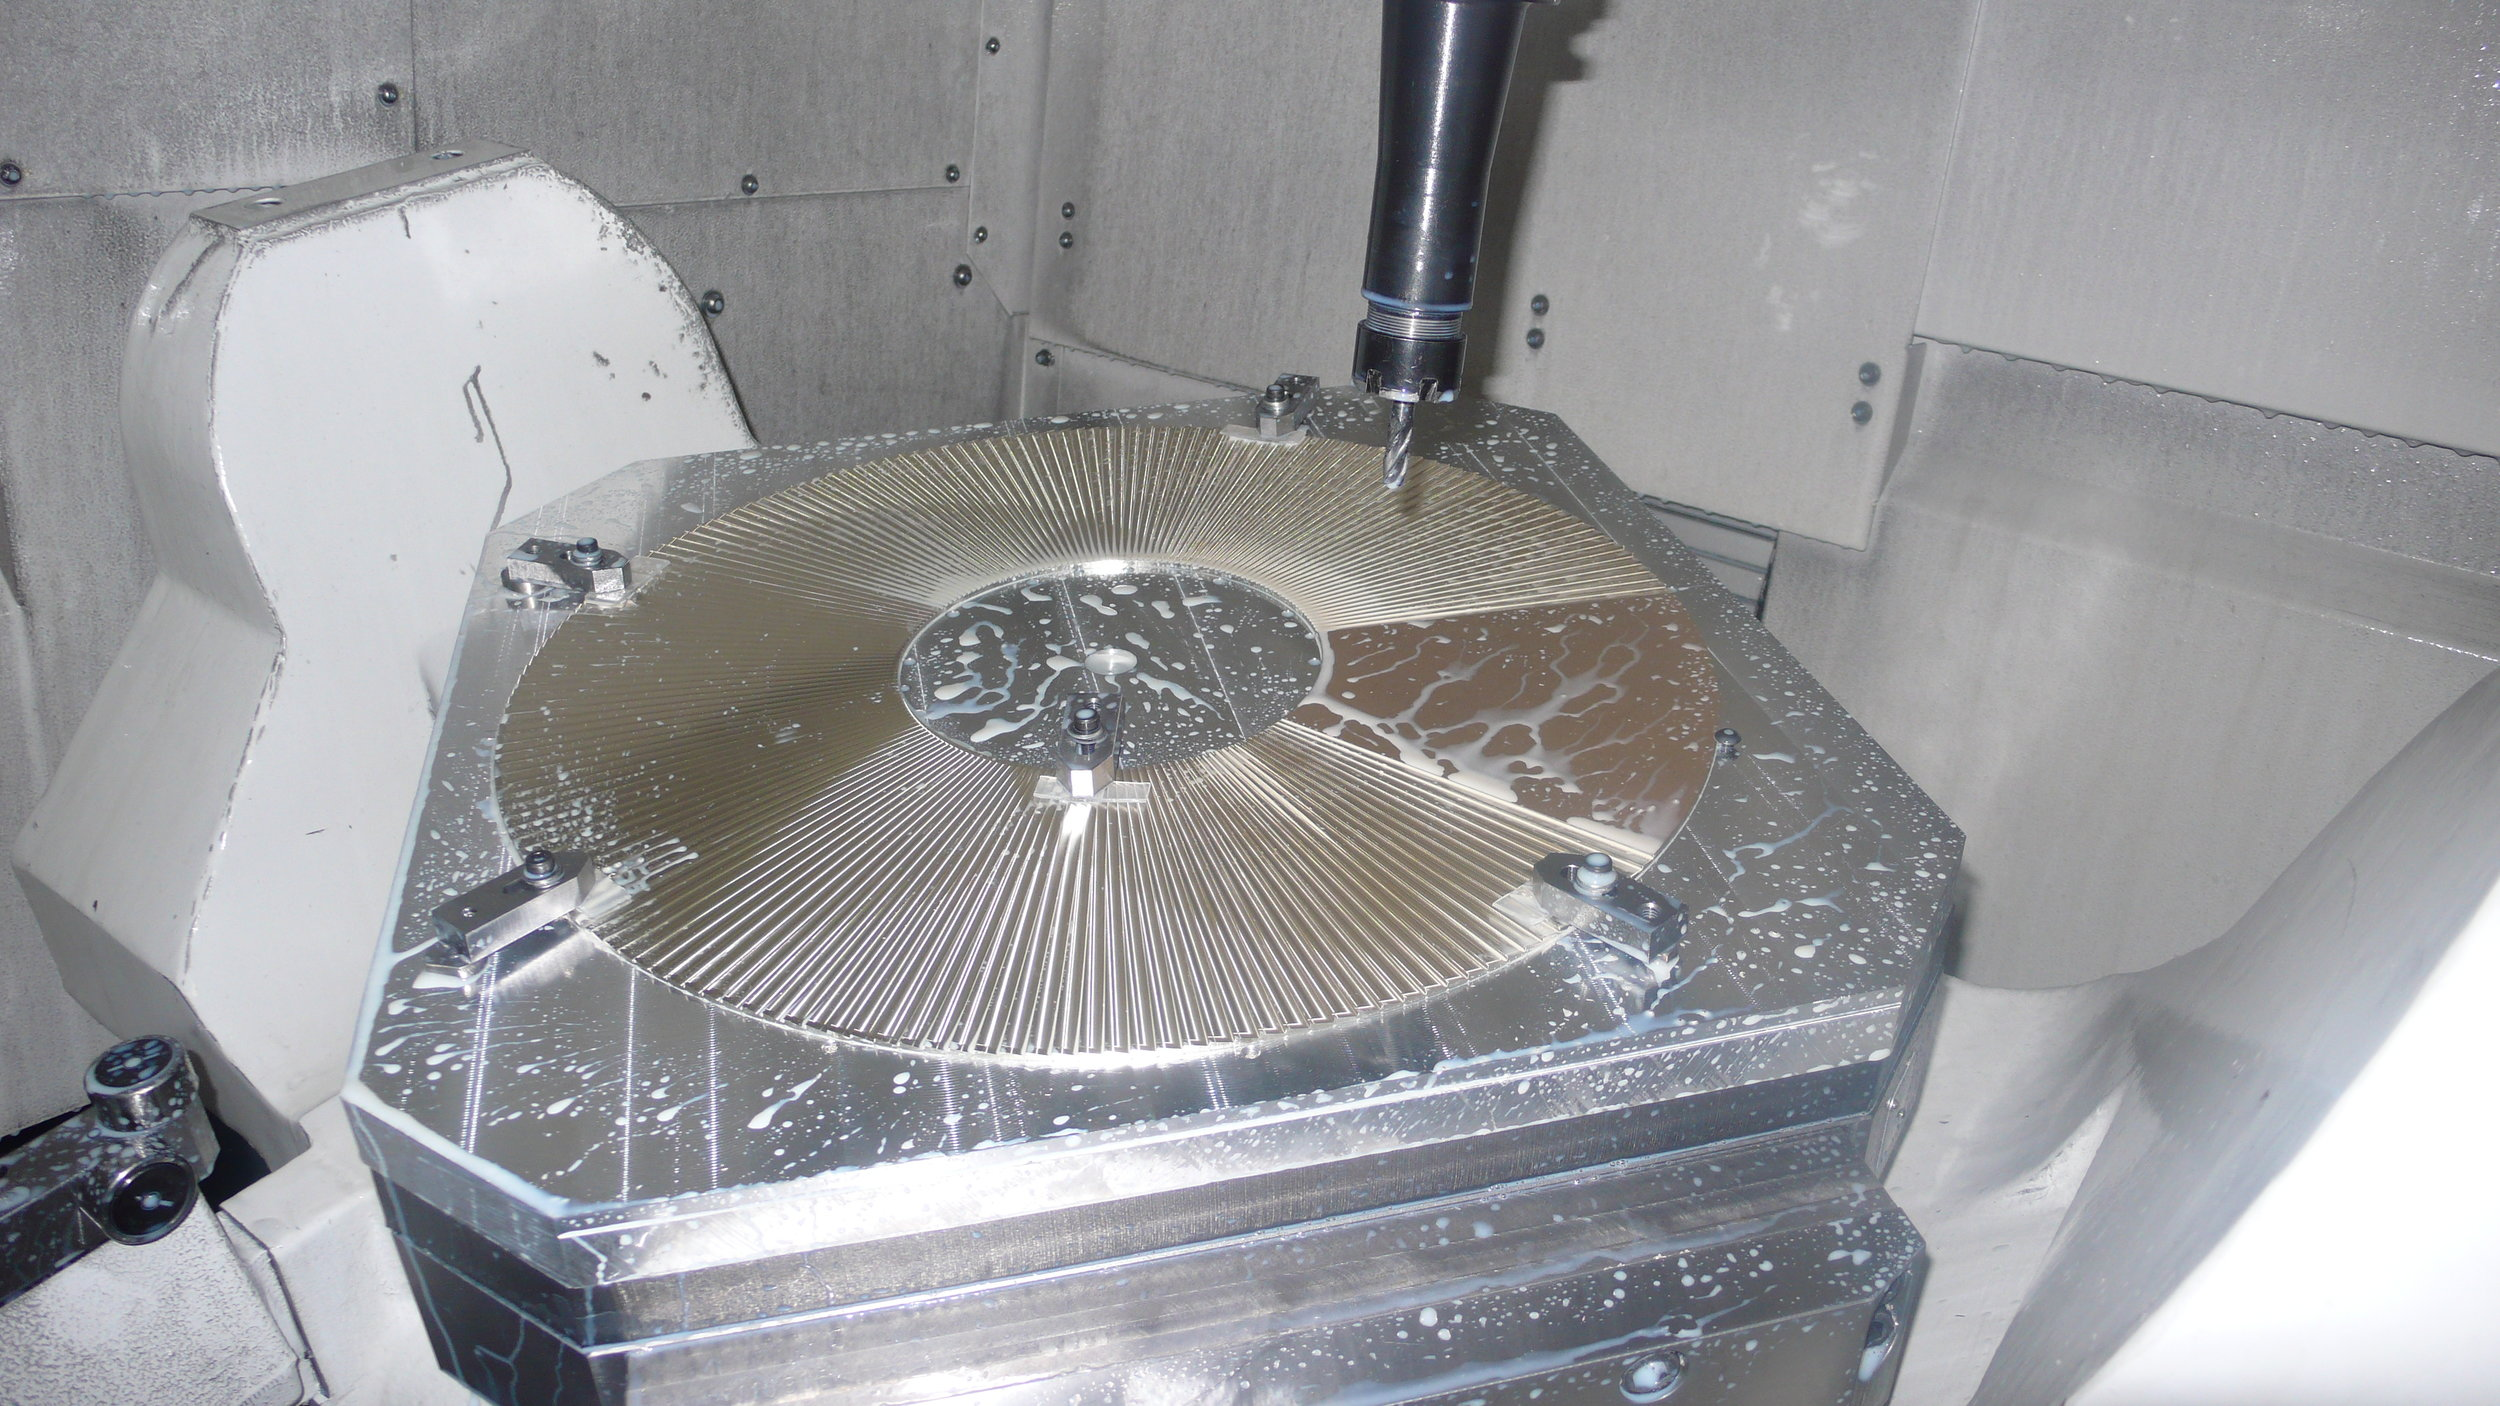 Machining of solid silver decorative bowl